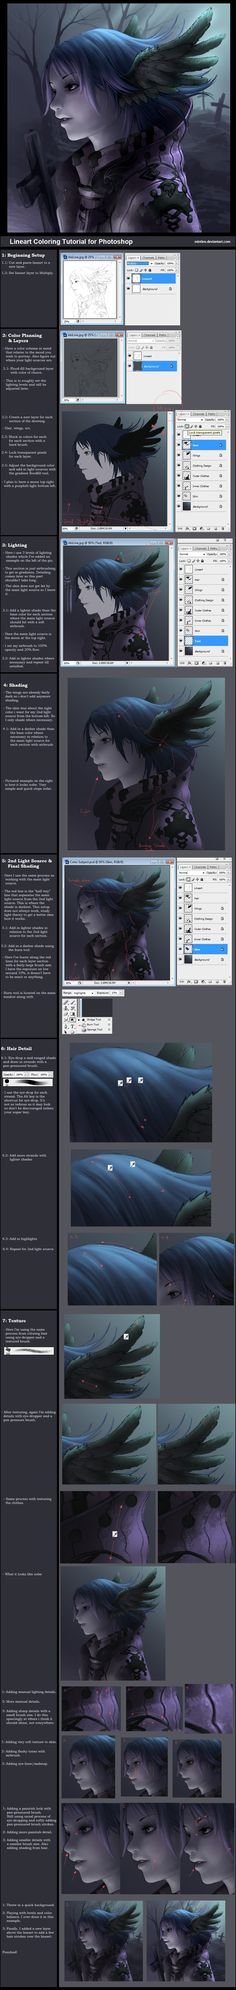 Tutorial: Lineart Coloring by ~minties on deviantART